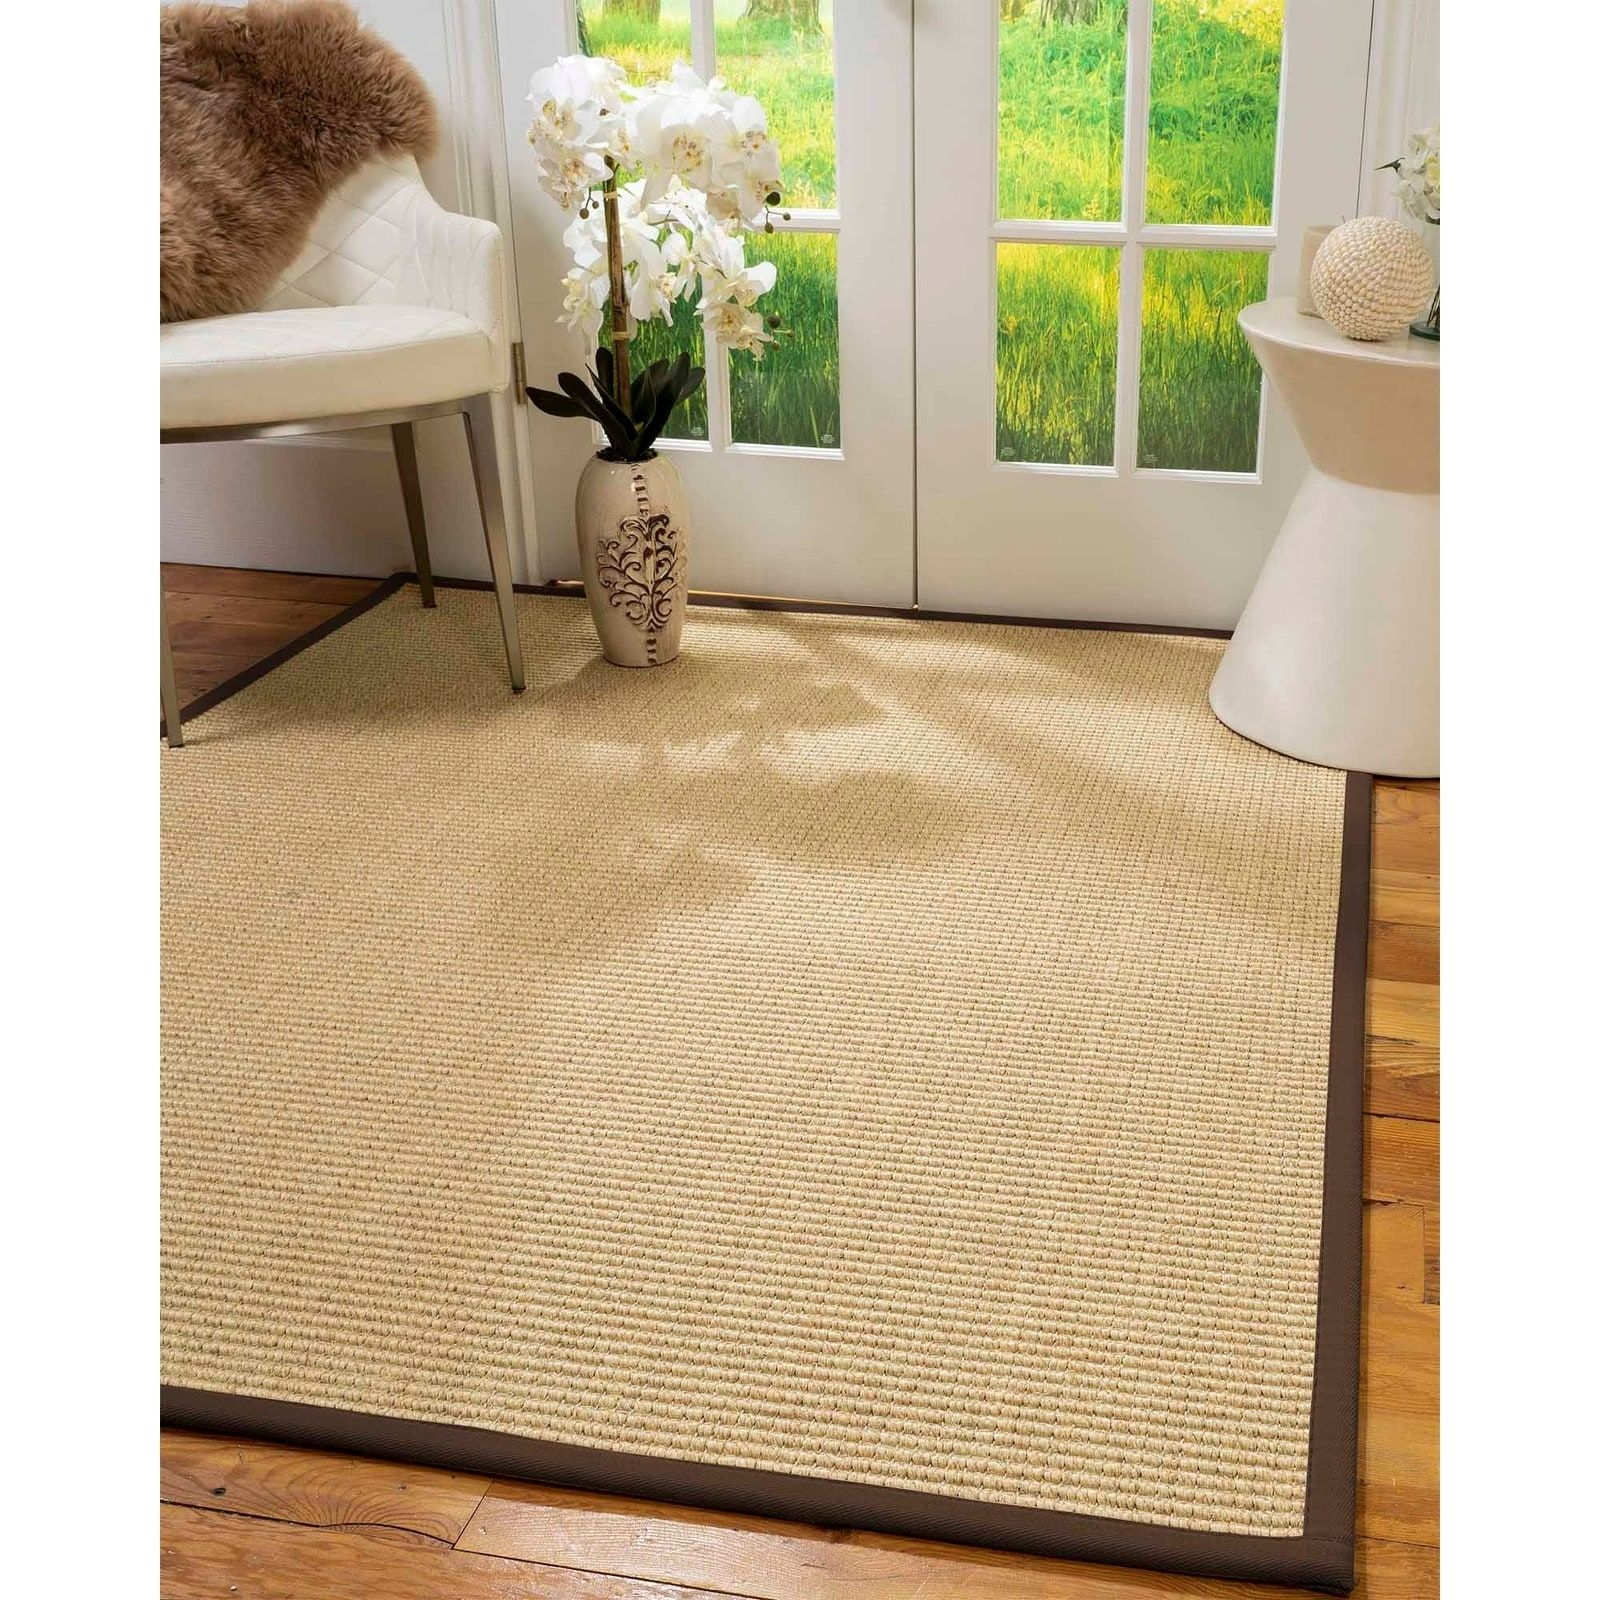 Natural Area Rugs 100 Natural Fiber Handmade Lucca 10 Octagon Beige Sisal Rug Fudge Border 10 X 10 Octagon Natural Area Rugs Area Rugs Beige Area Rugs